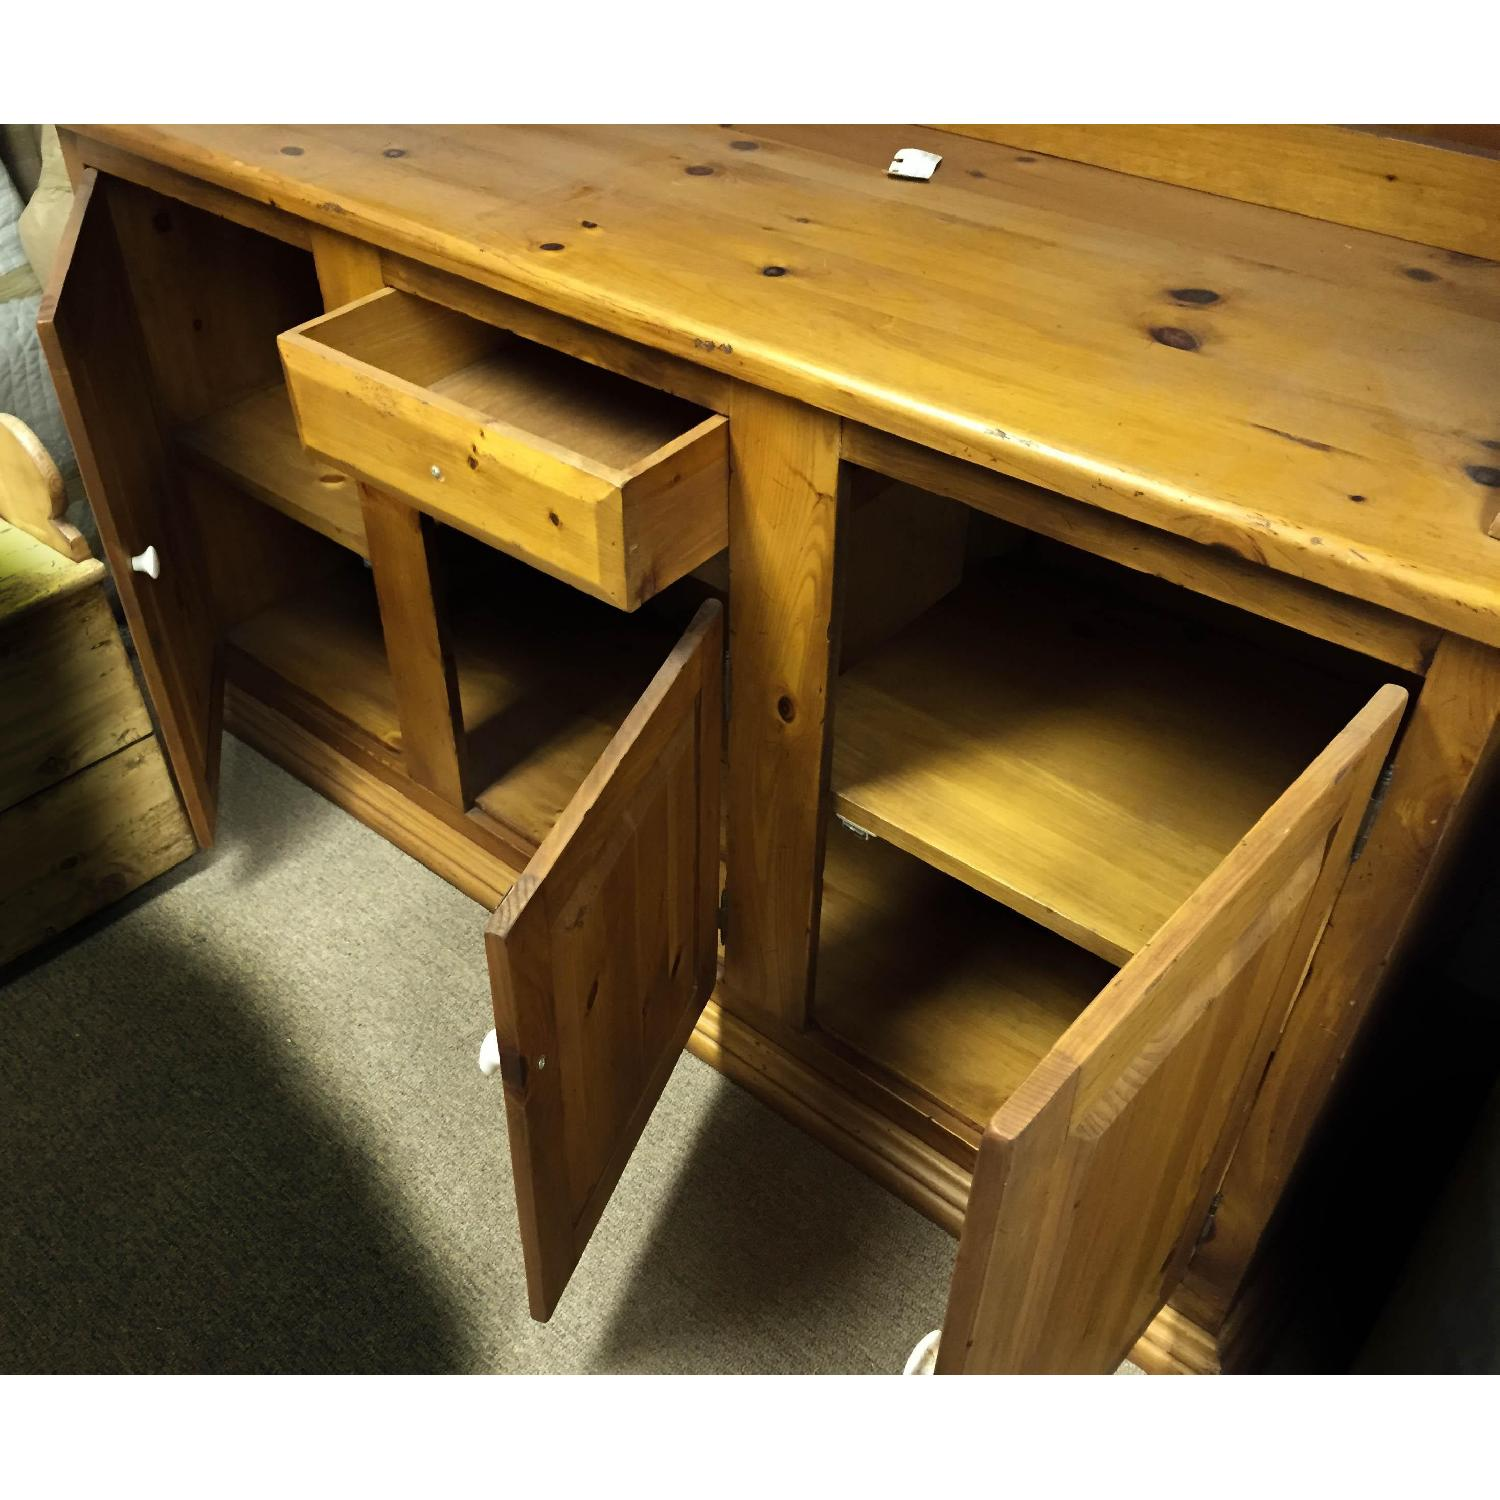 Antique Pine Welsh Kitchen Dresser & Display Hutch - image-1